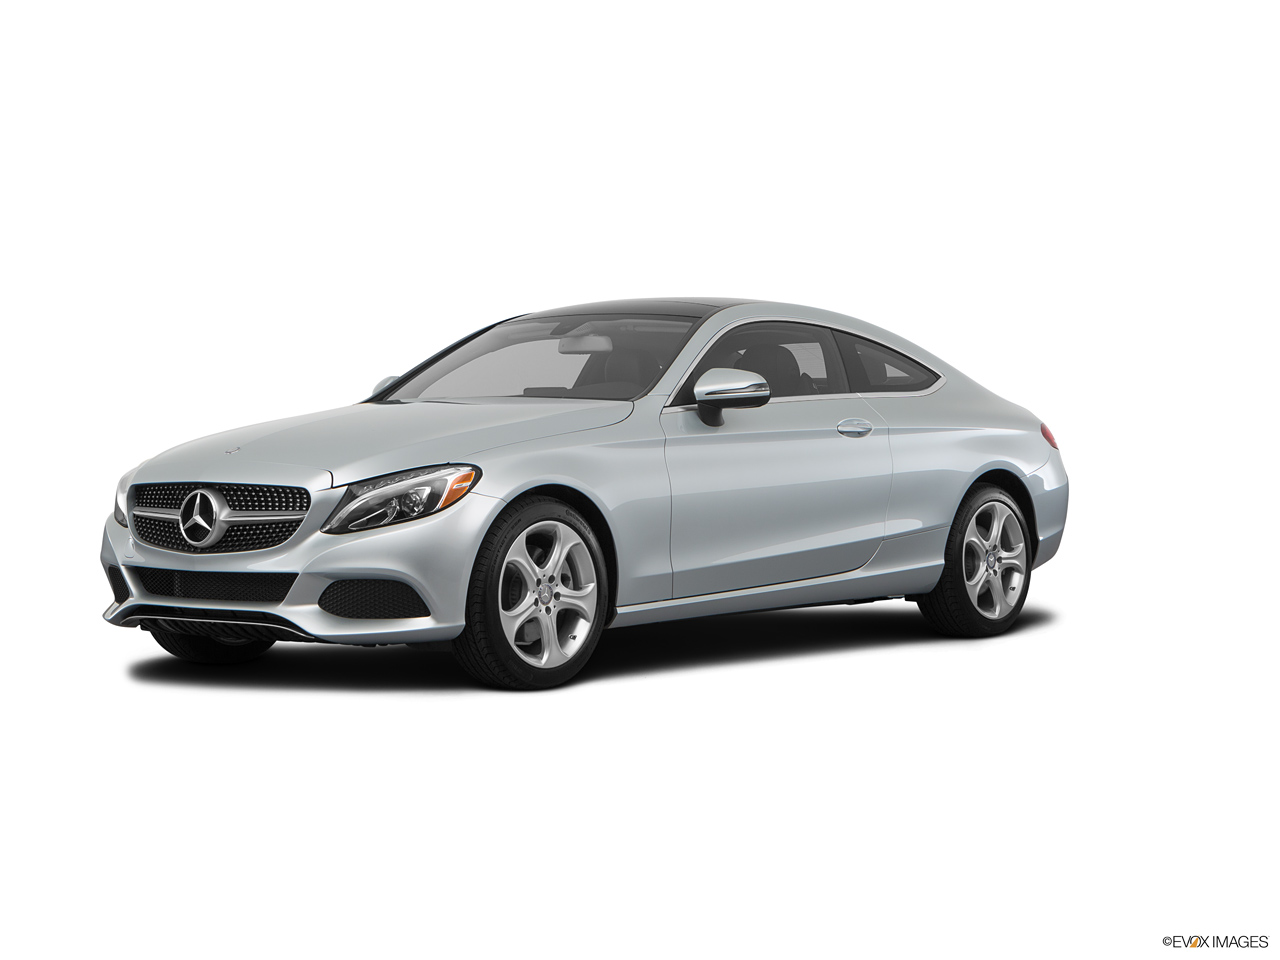 Car pictures list for mercedes benz c class coupe 2017 c for Mercedes benz model list